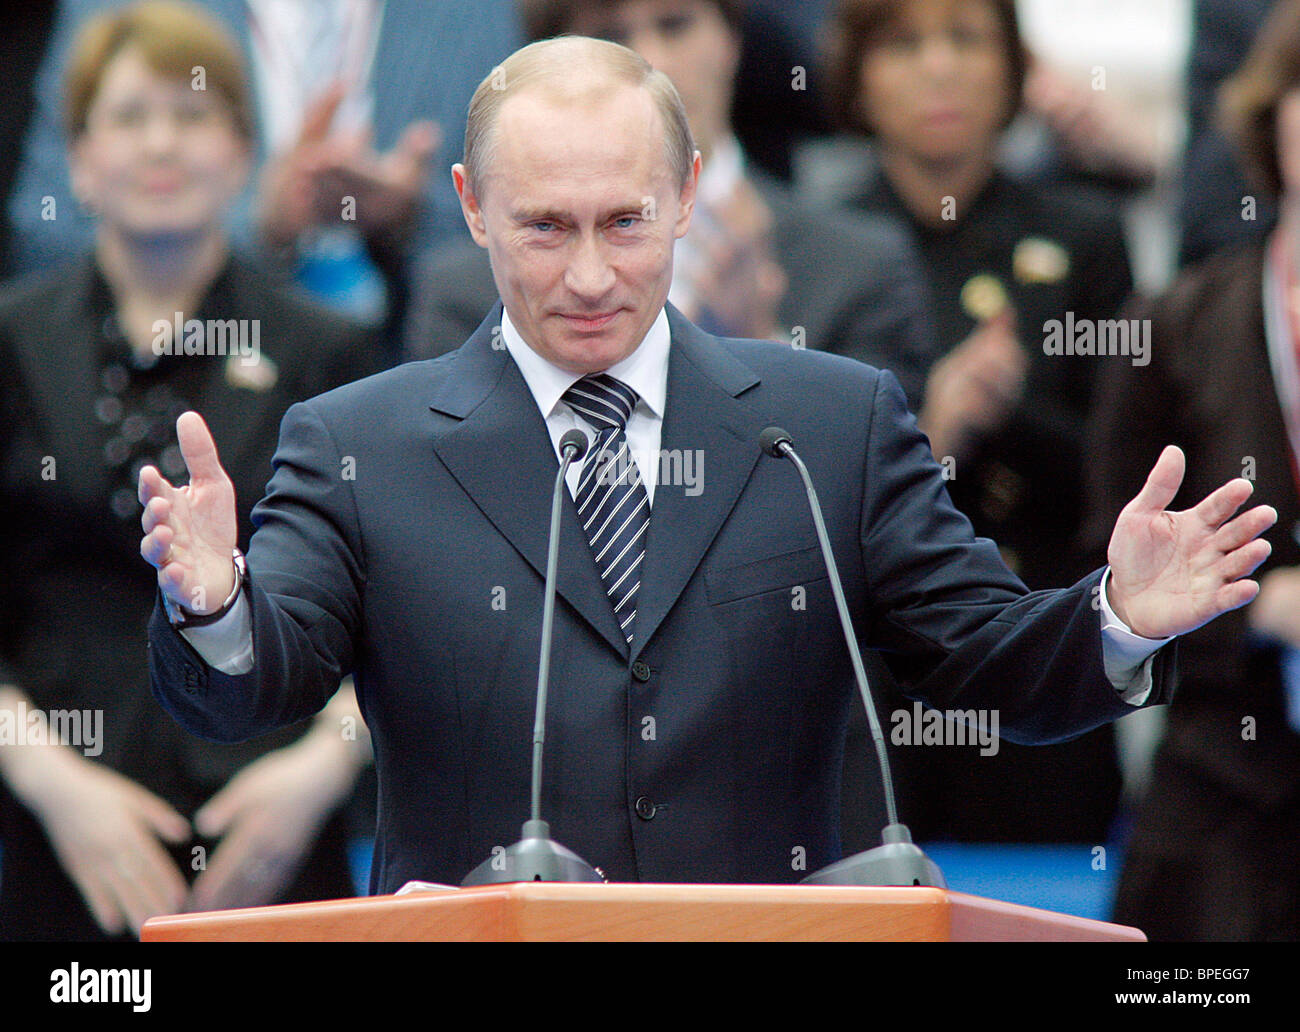 Vladimir Putin elected for United Russia Party chairman - Stock Image